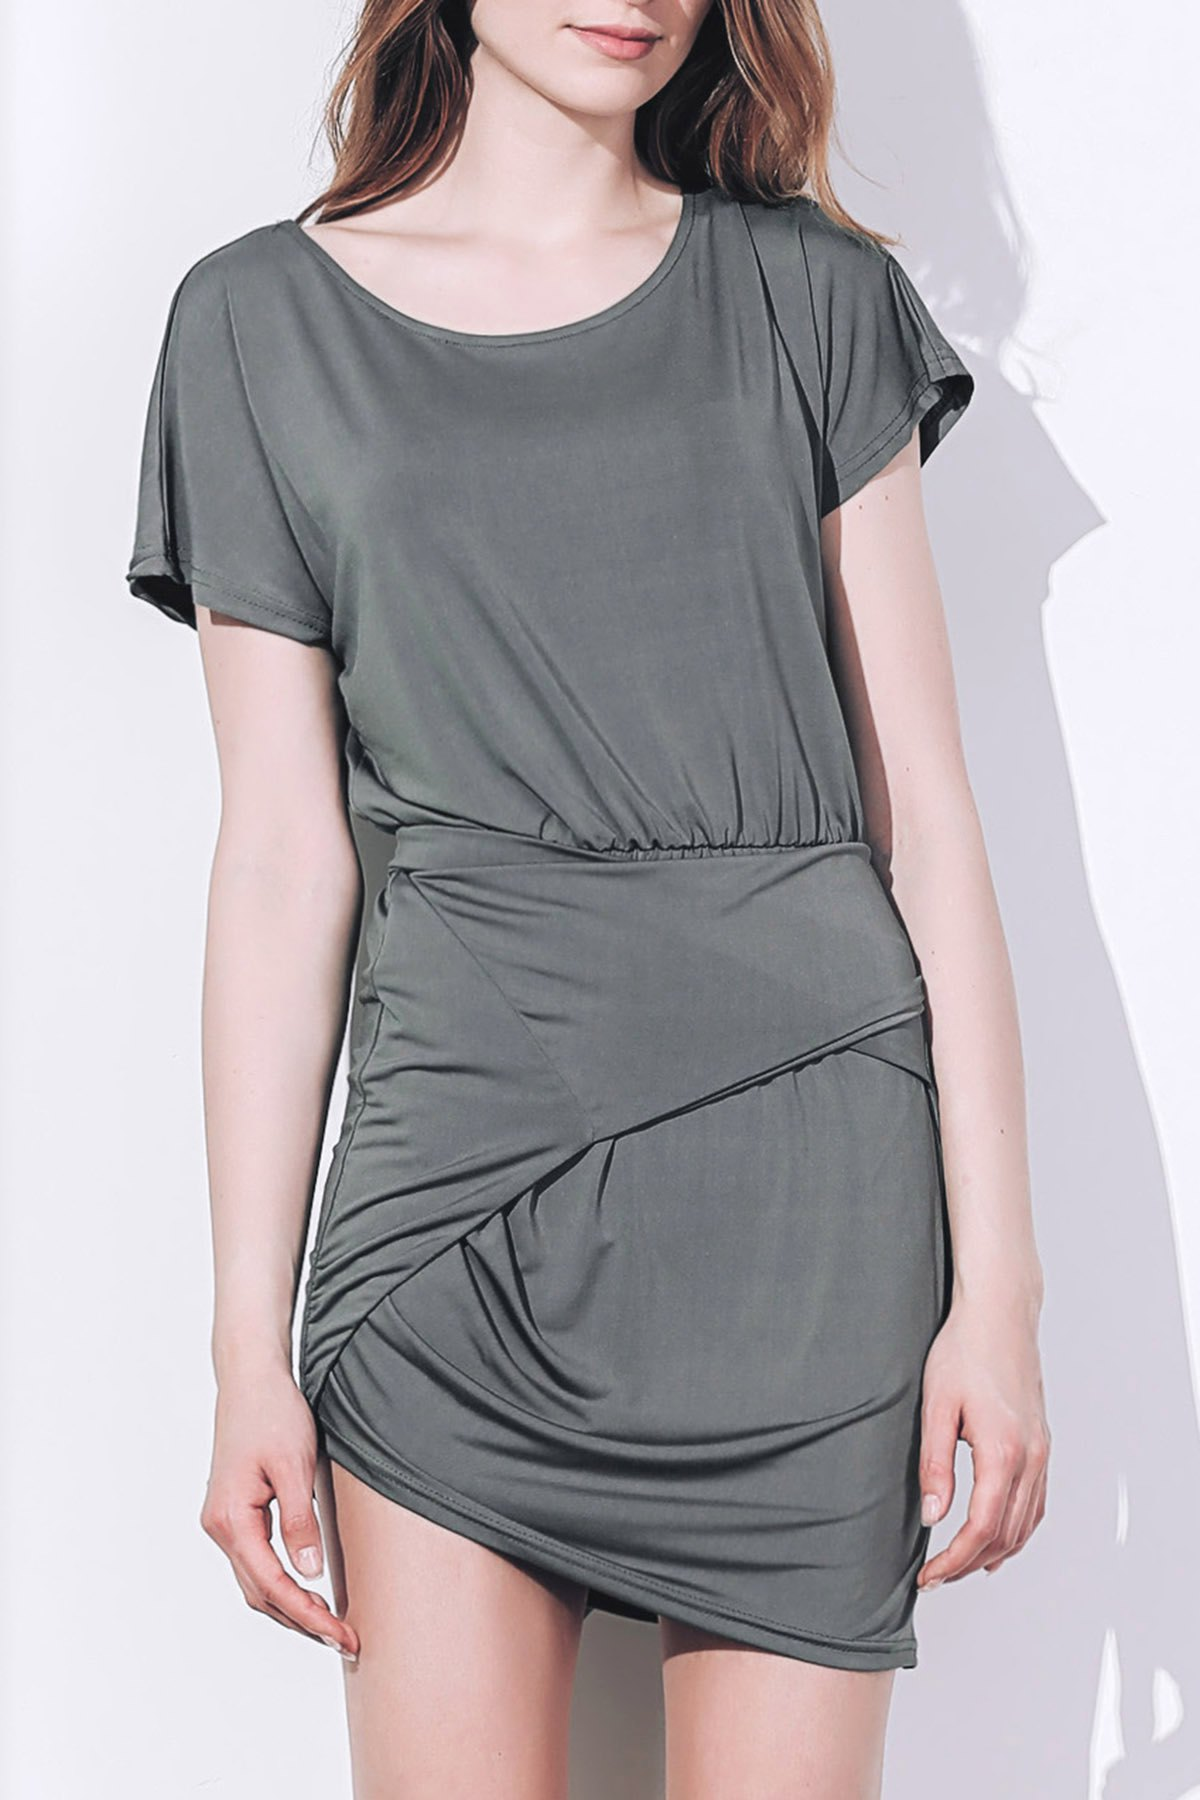 Sexy Short Sleeve Scoop Neck Asymmetrical Women's Dress - BATTLESHIP GRAY M